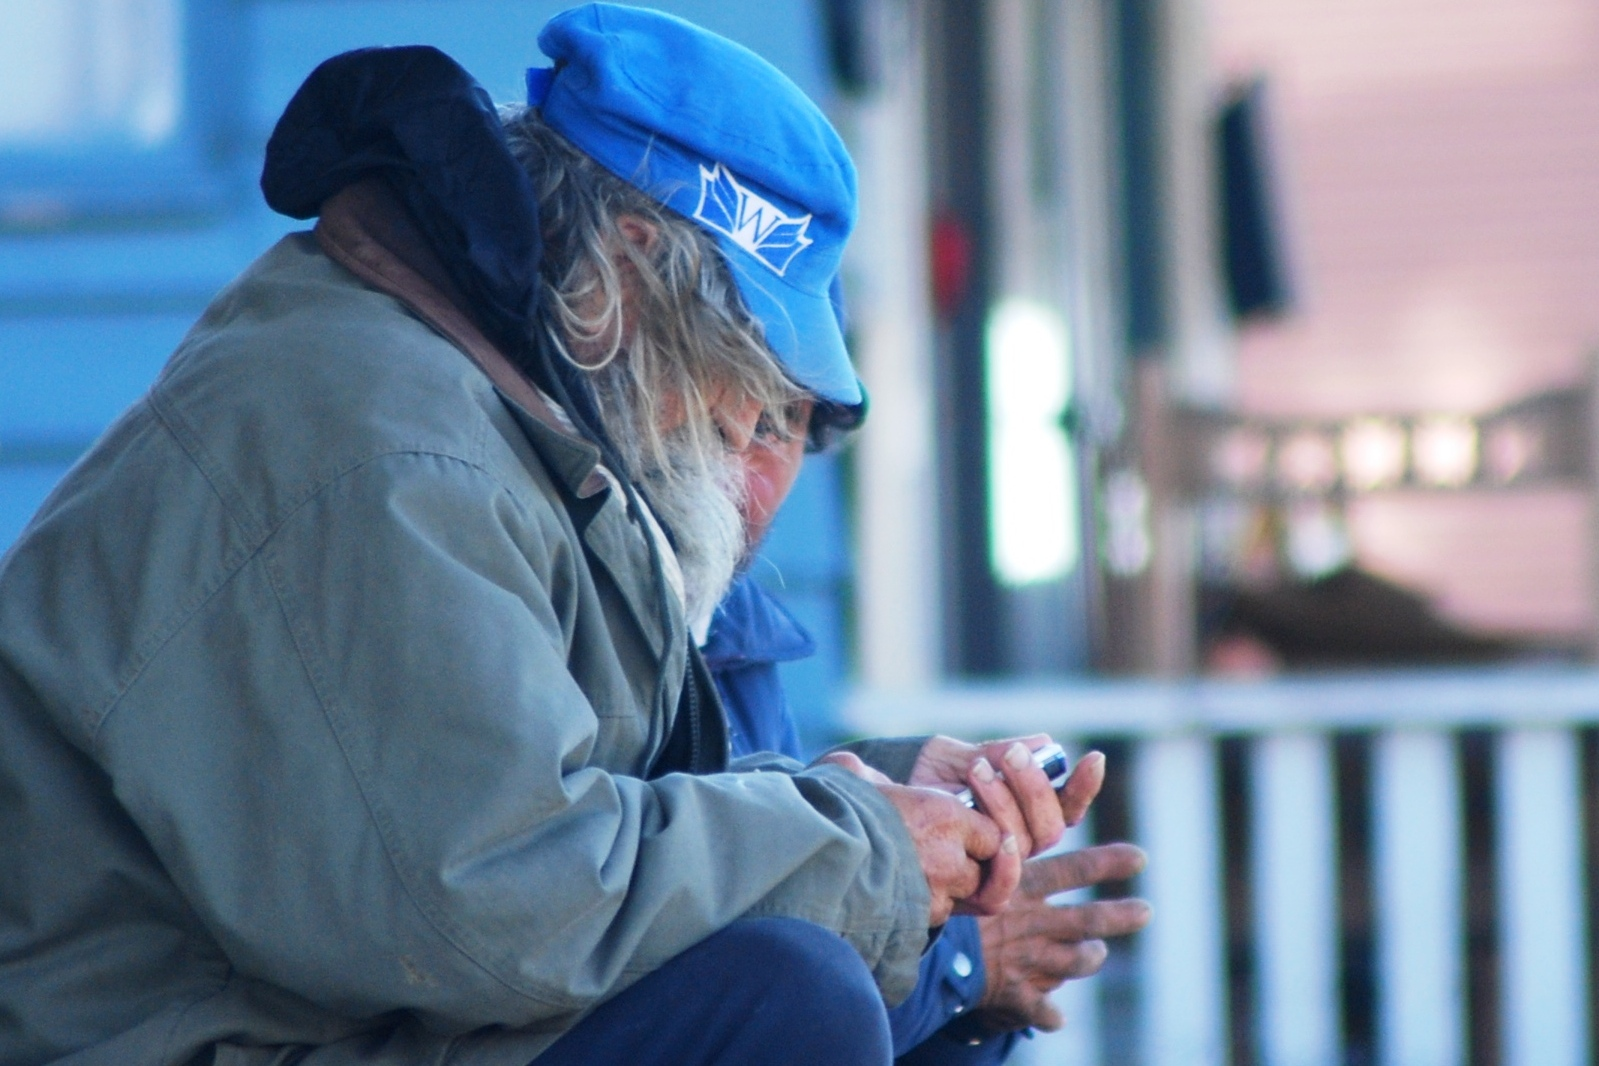 Homeless Texting